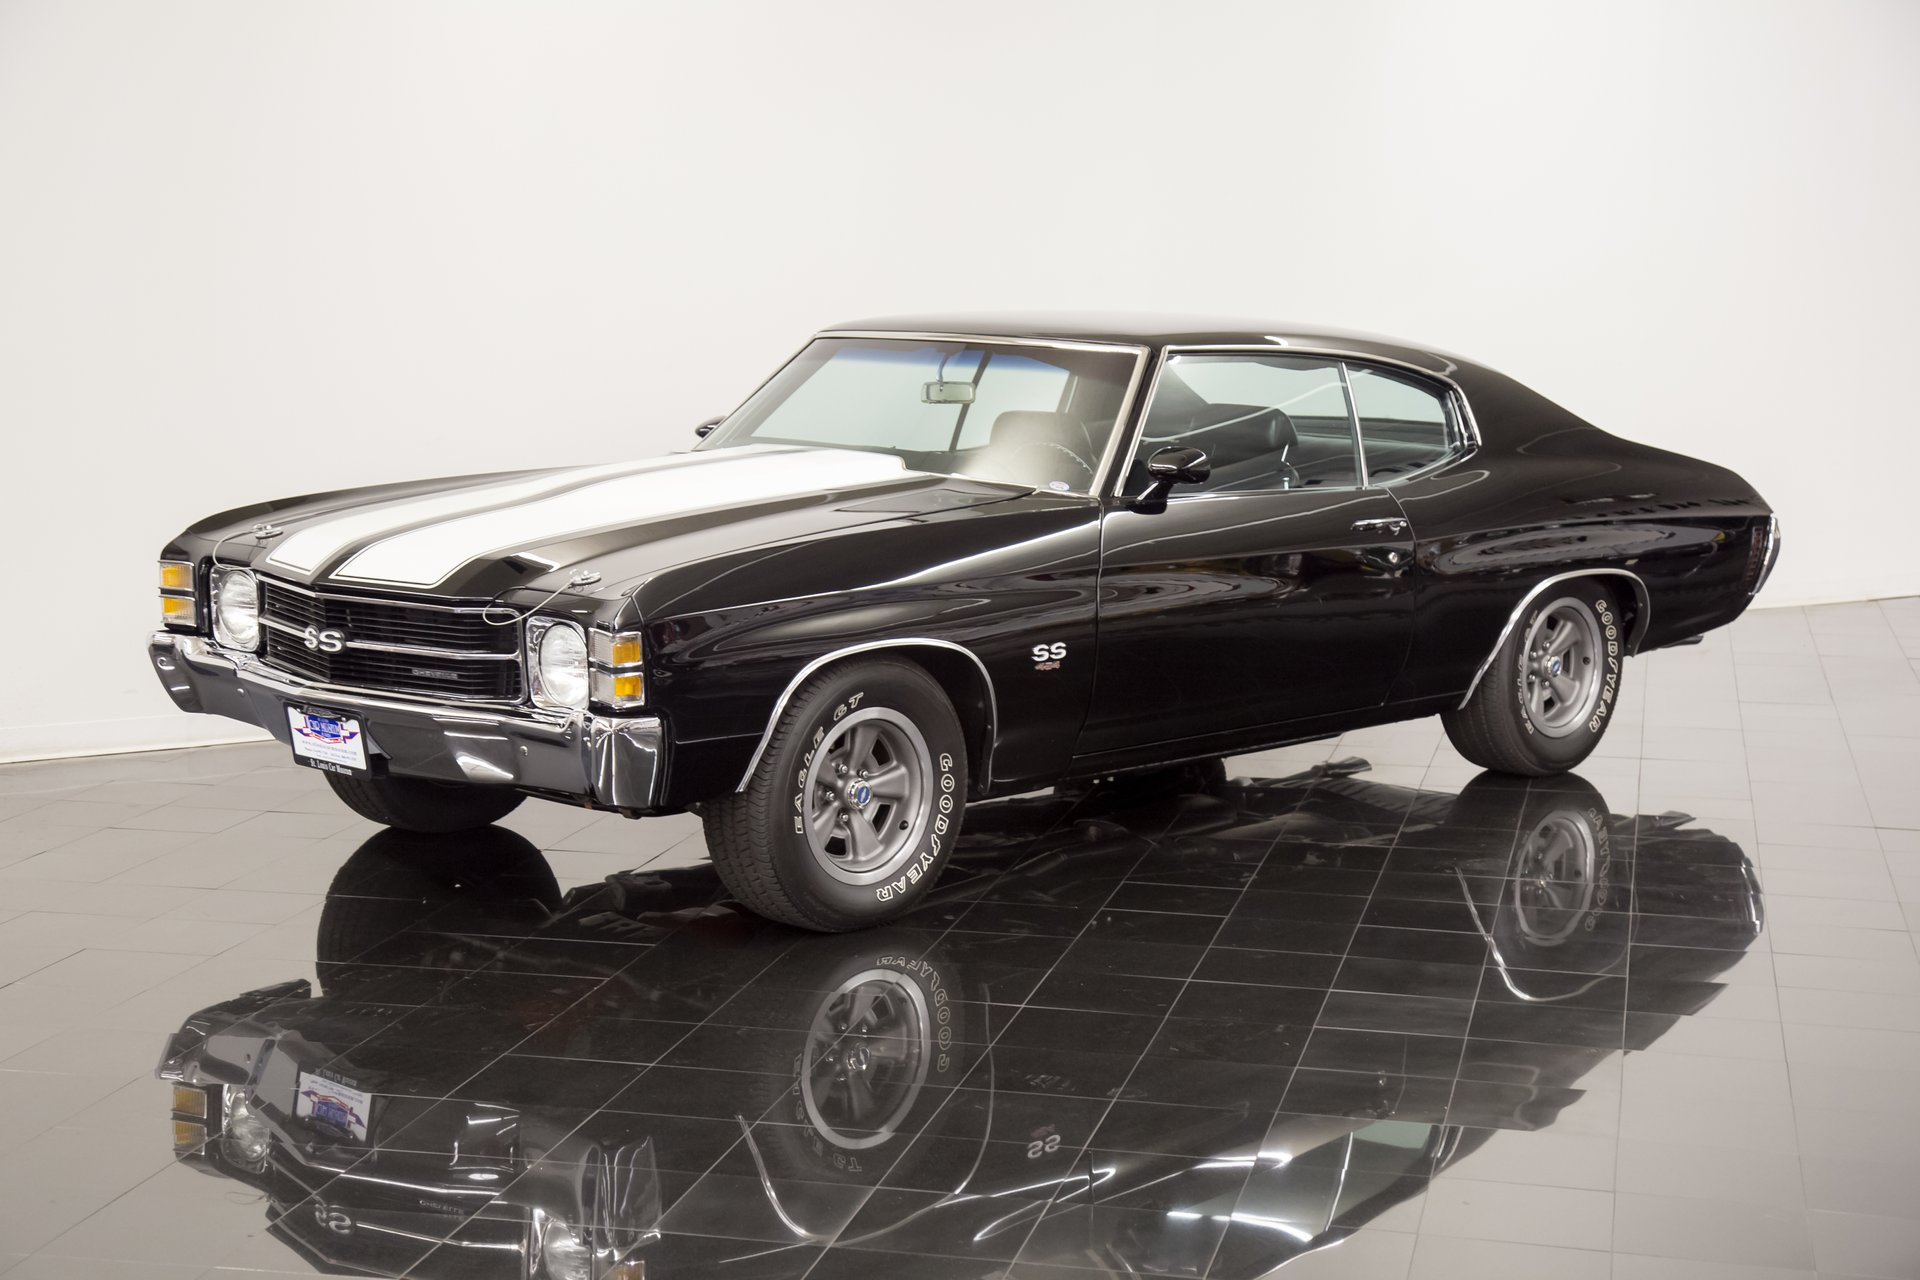 1971 chevrolet chevelle ss454 sport coupe